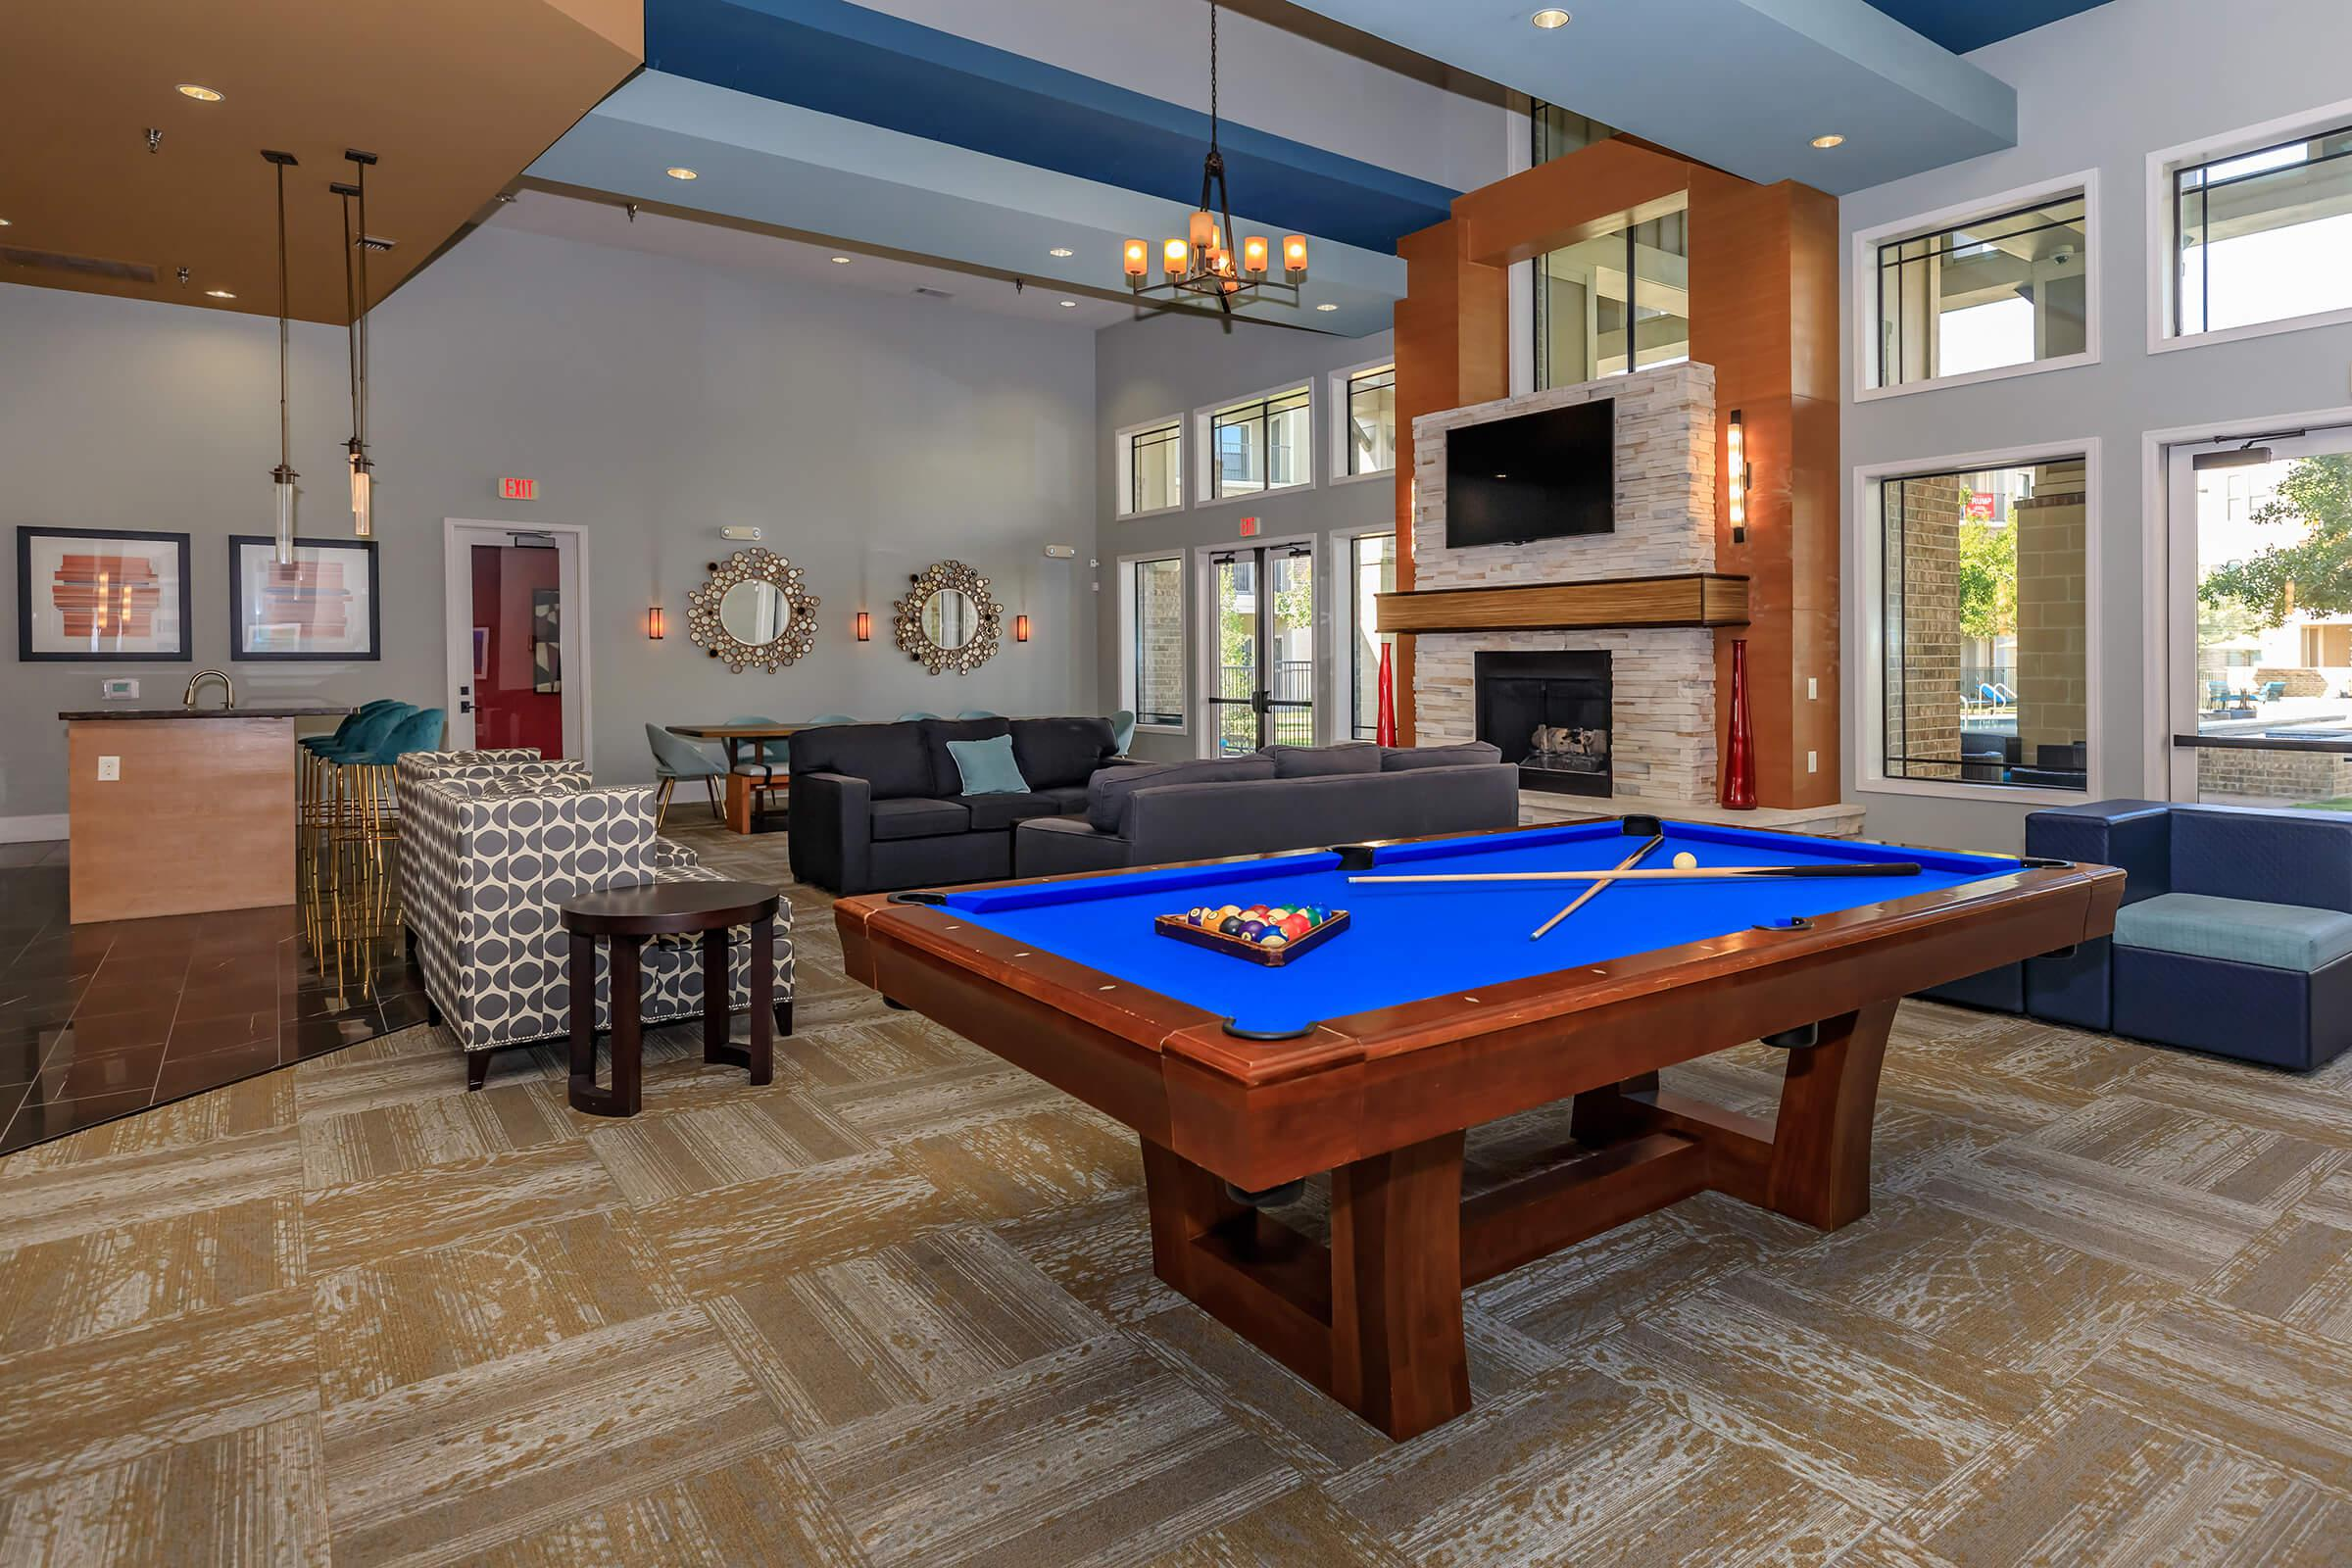 a living room with a pool table